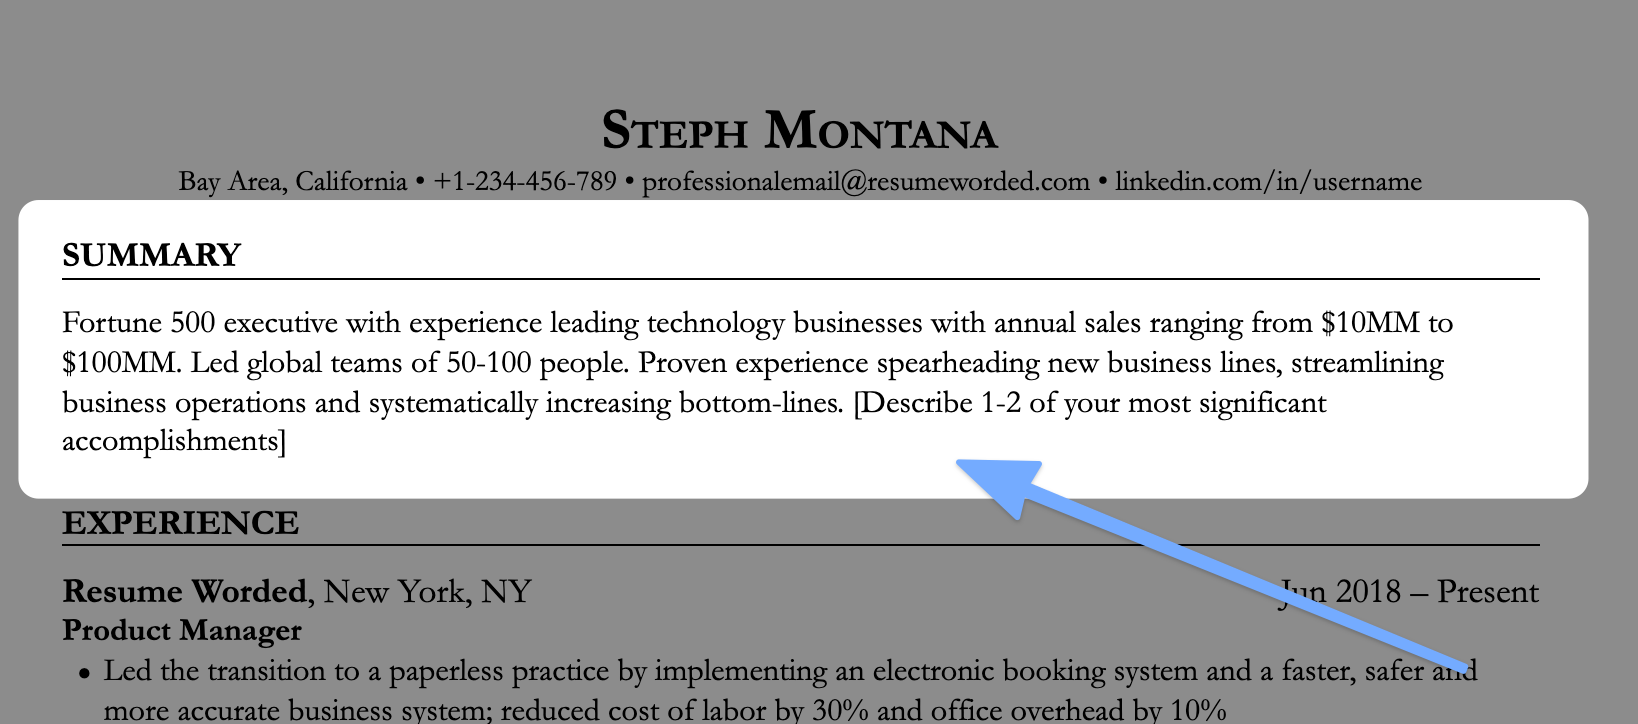 A resume opening statement that highlights specific accomplishments